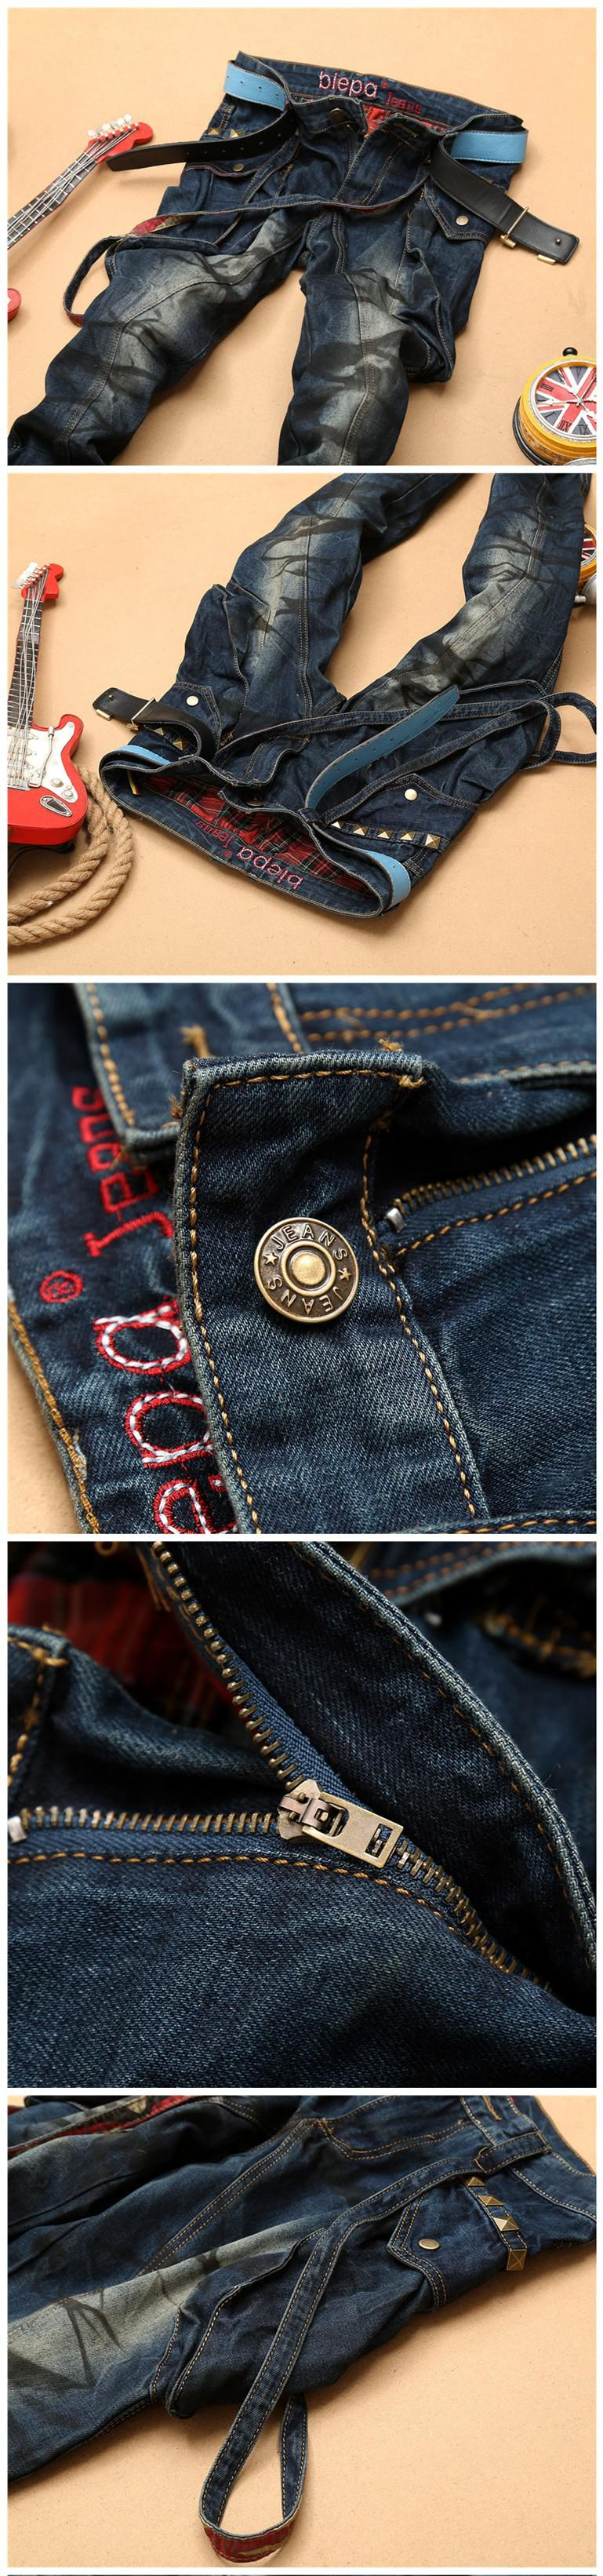 2016 New Fashion Mens Straight Cotton Denim Biker Jeans With Strap And Rivet Hiphop Style Regular Fit Famous Brand Clothing Hot